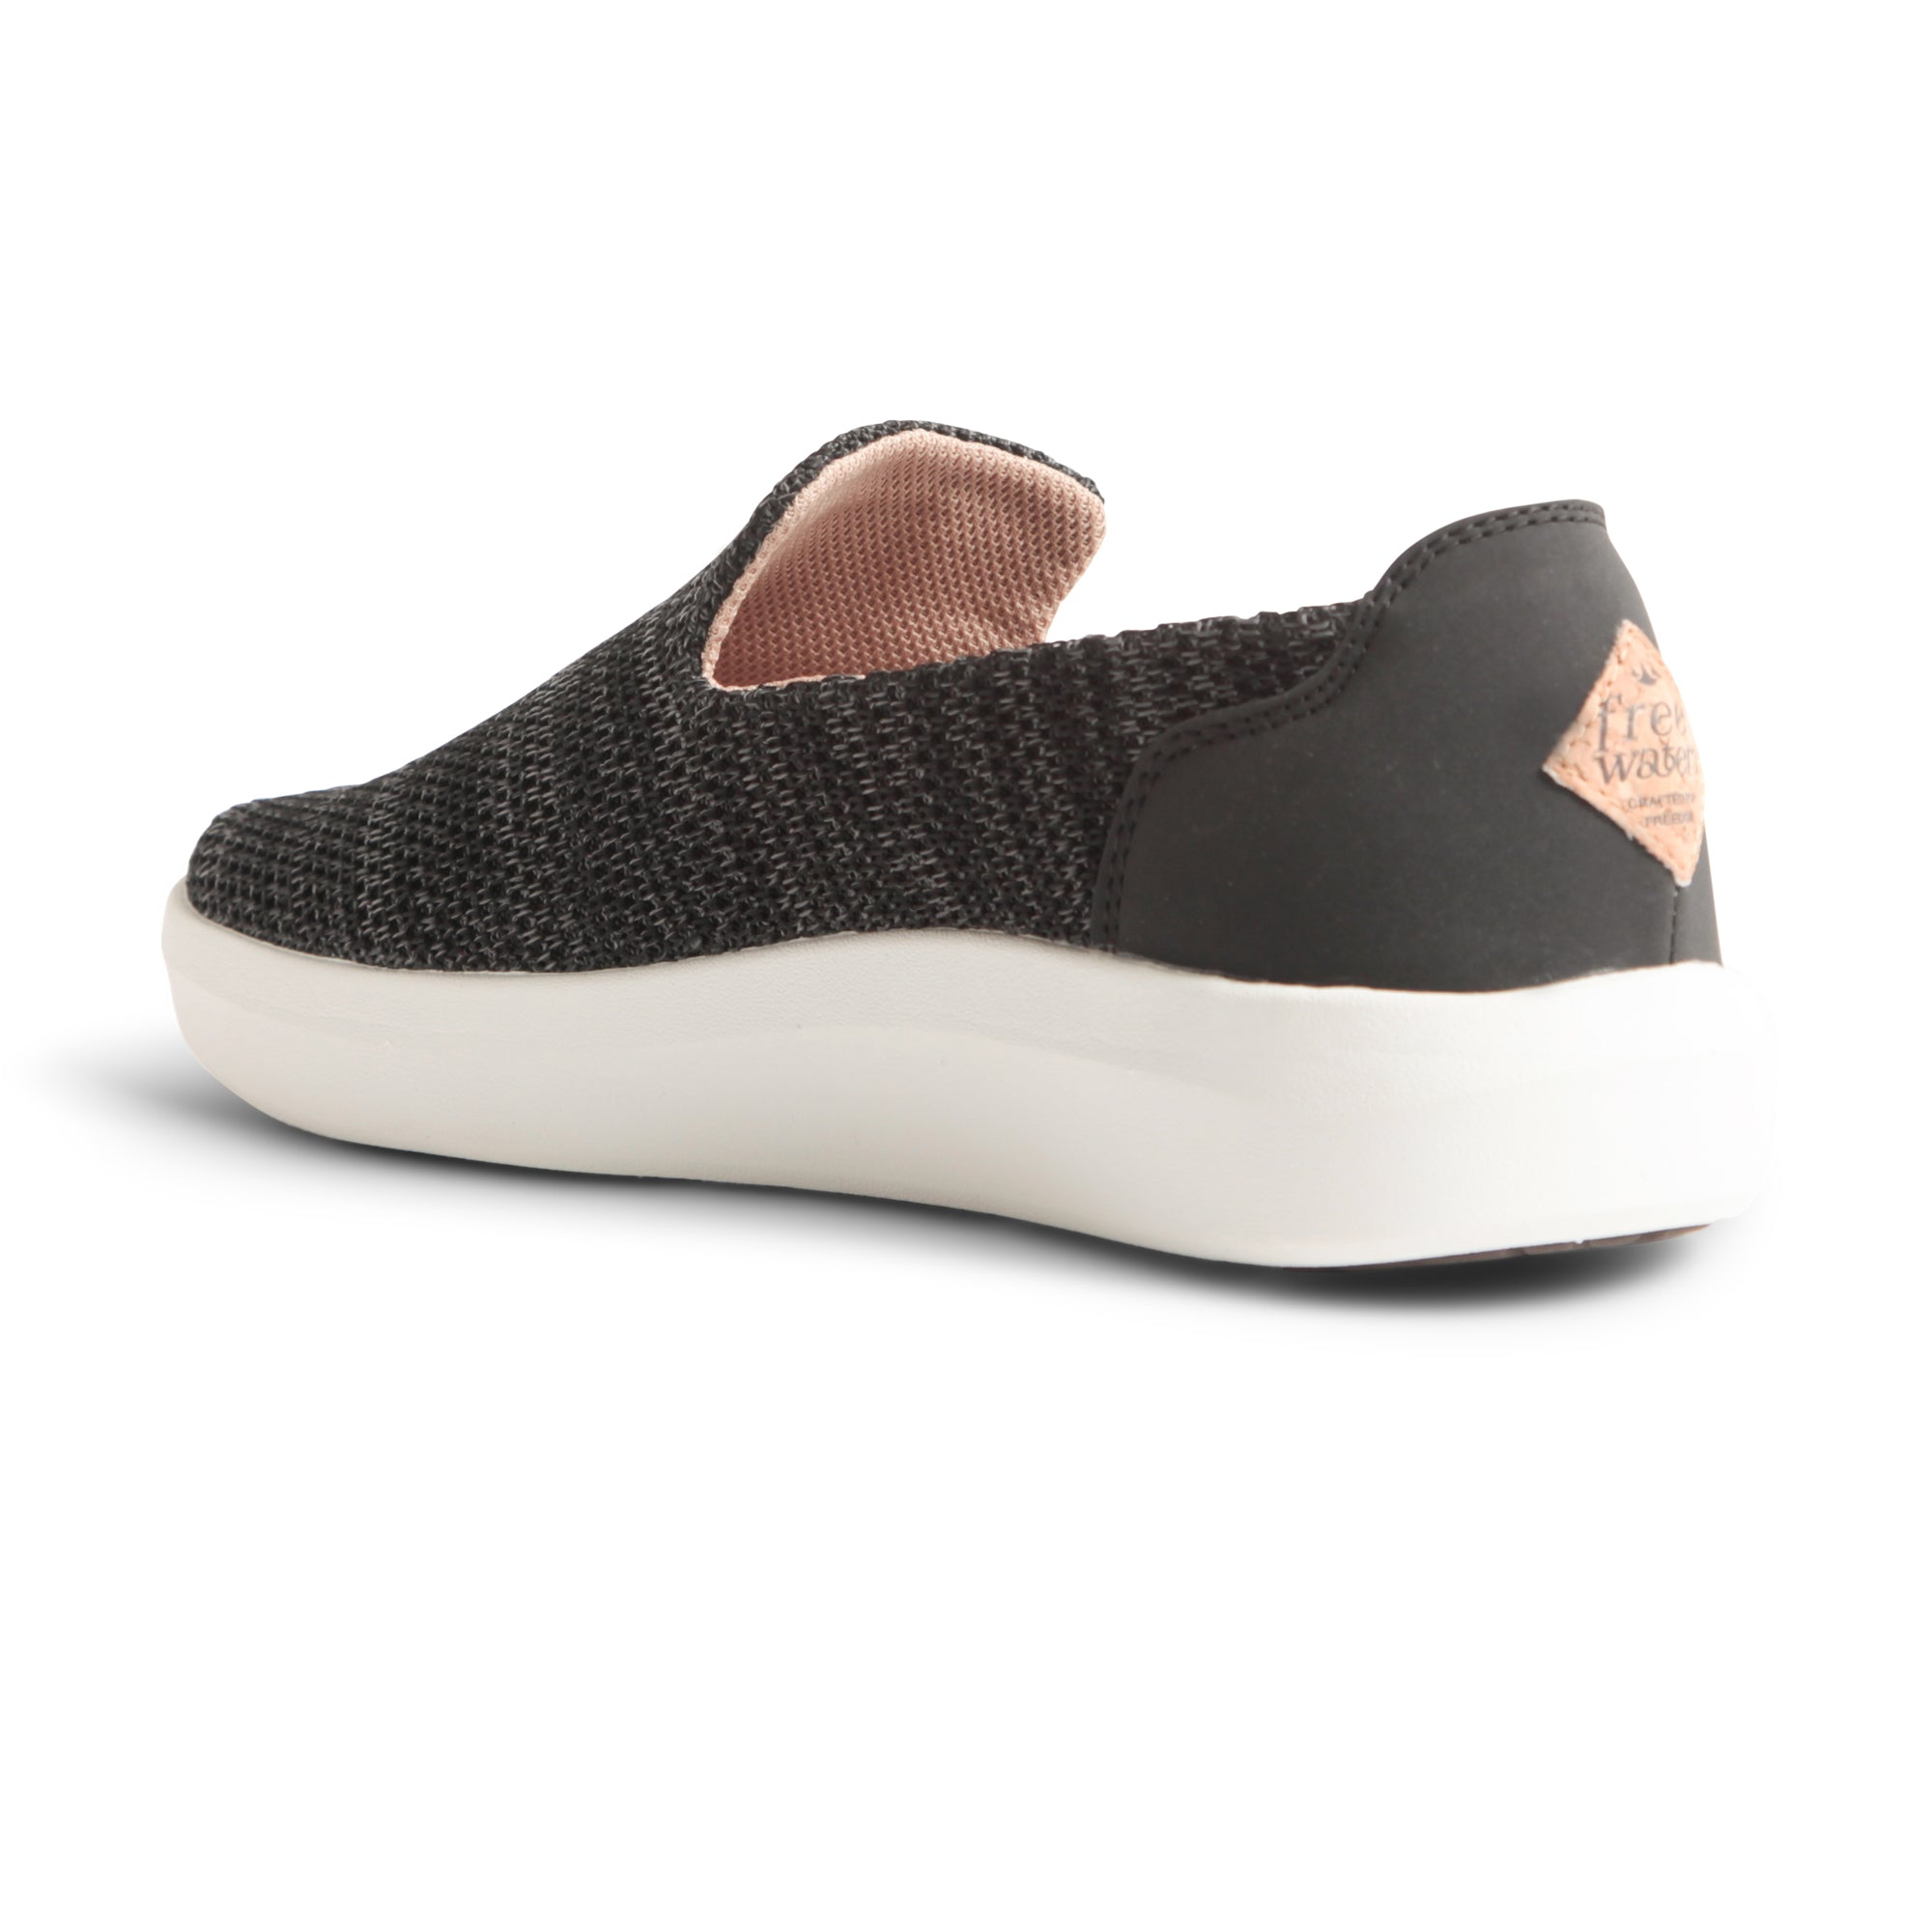 Womens TRVL Slip On - Black